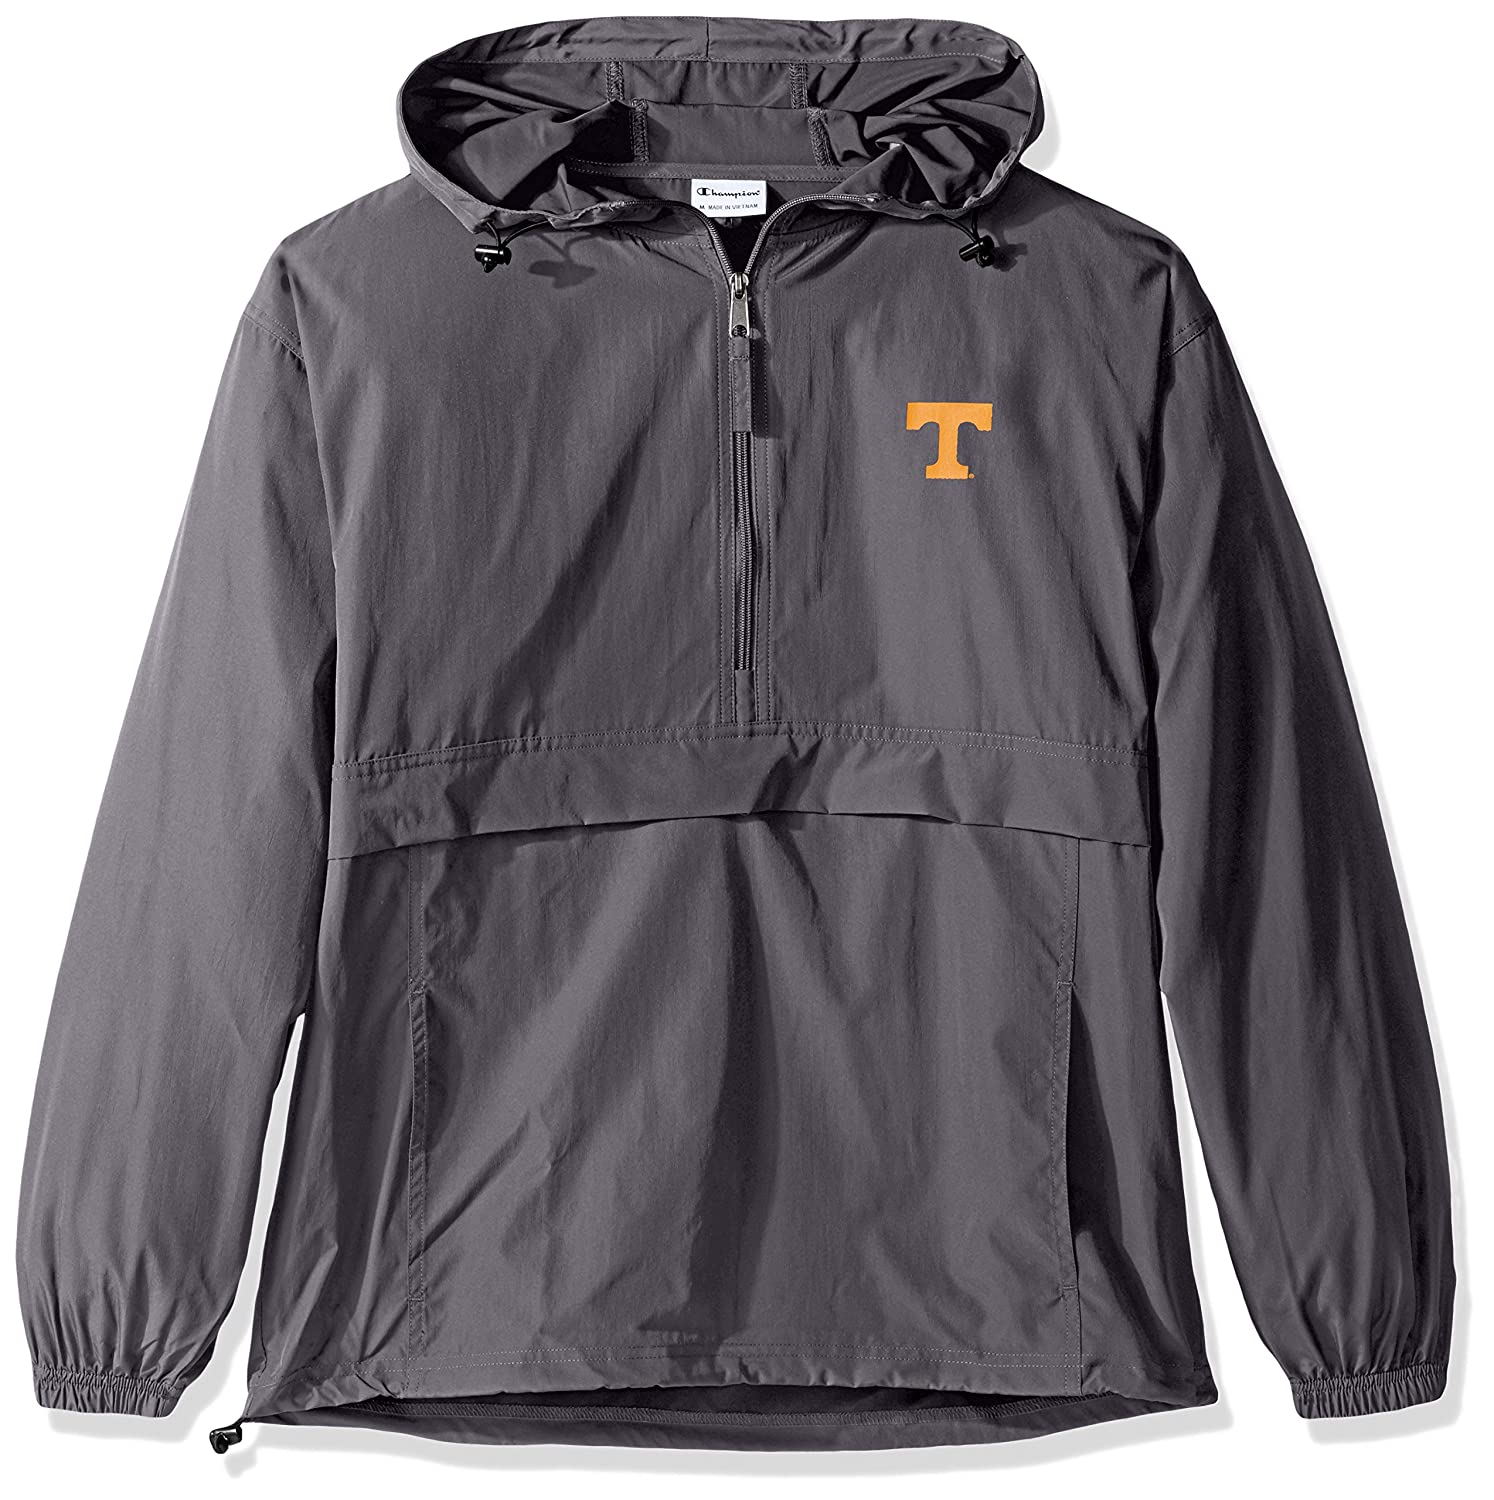 a081a81393c3 Amazon.com   Champion NCAA Men s Half Zip Pack   Go Water Resistant Front  Pocket Packable Jacket   Sports   Outdoors